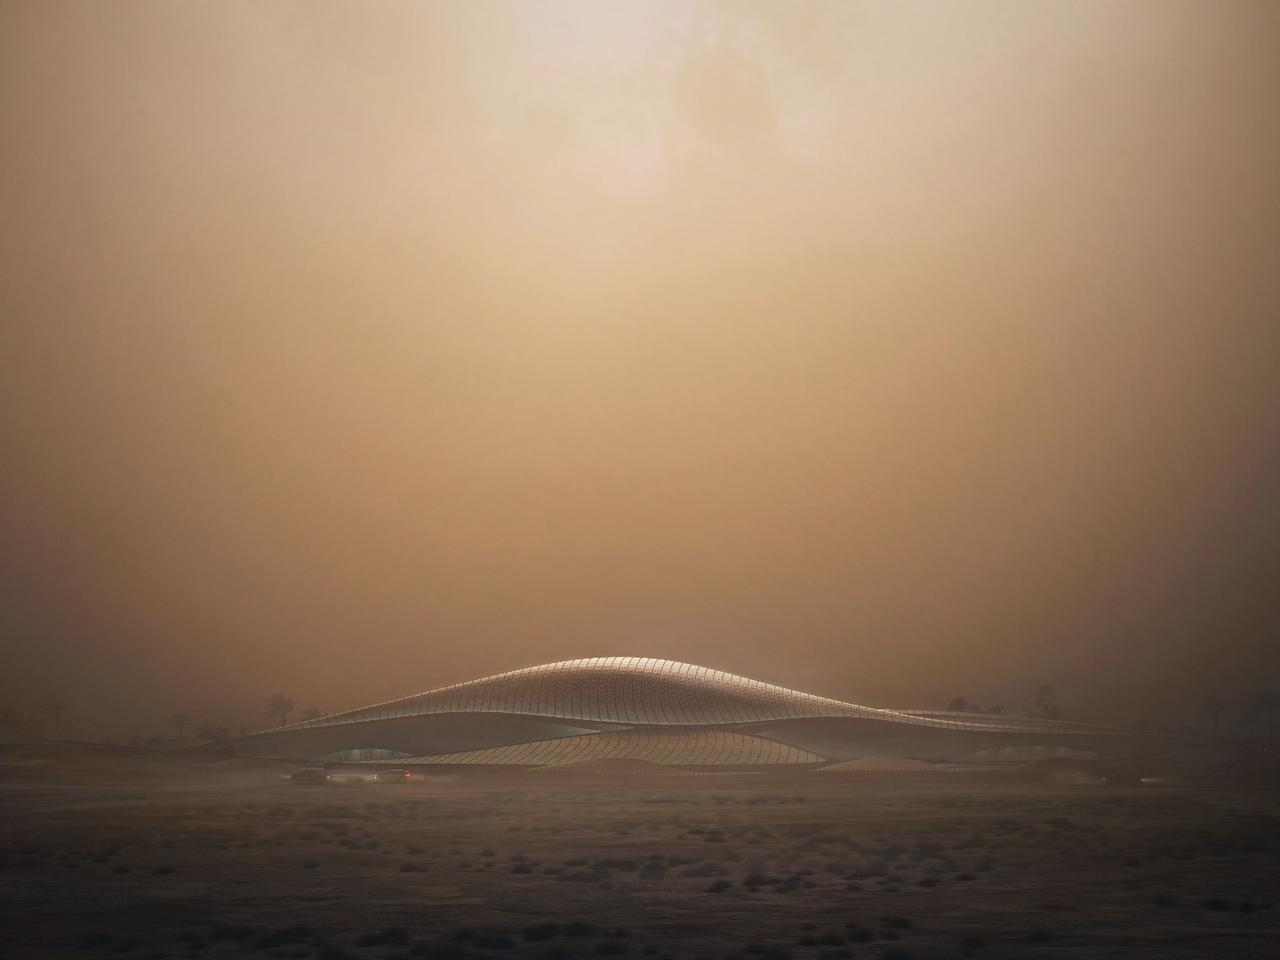 Bee'ah headquarters' dune-like design is meant to blend in with the local desert landscape